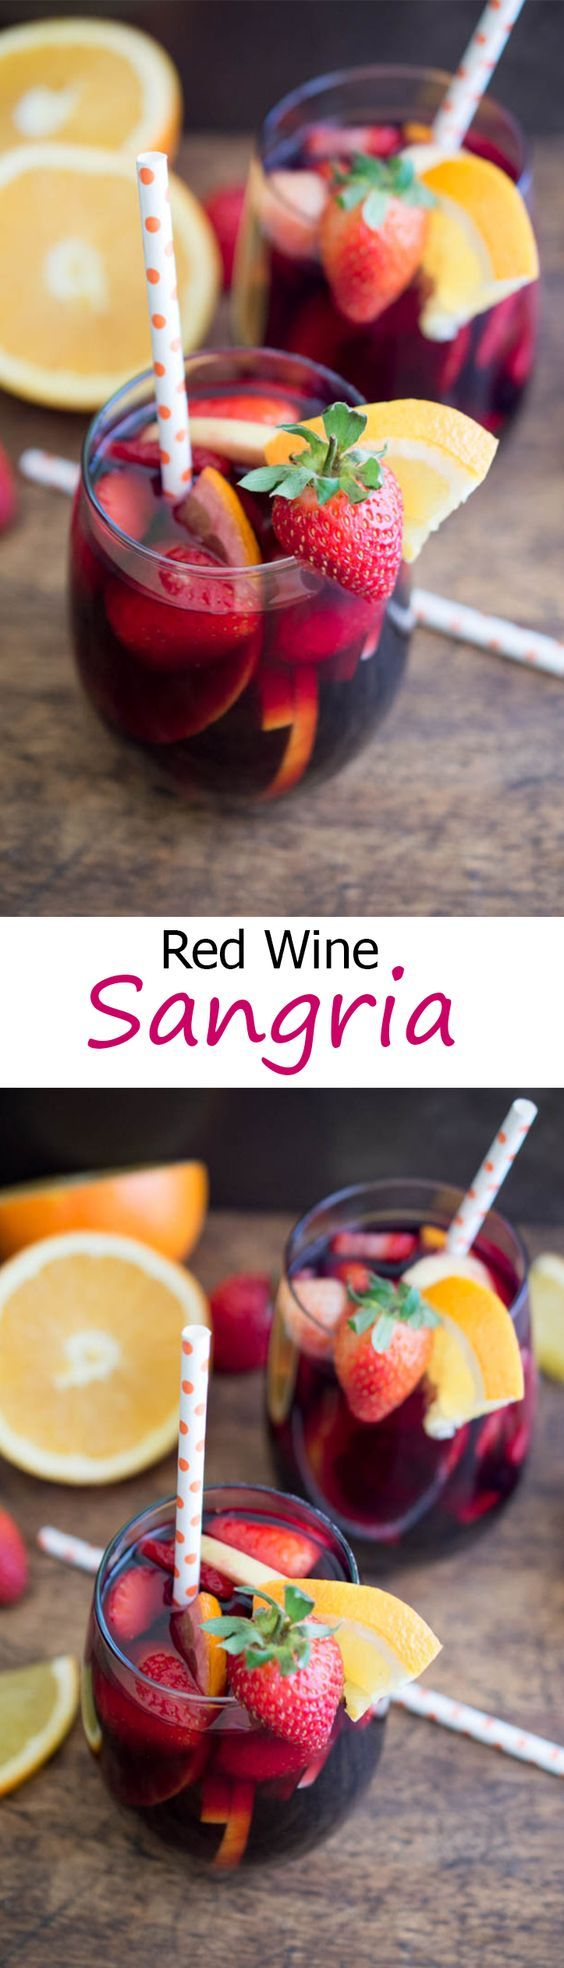 Red Wine Sangria - Made with fresh fruit, red wine, brandy and pomegranate juice. Perfect Fall or Winter cocktail.: